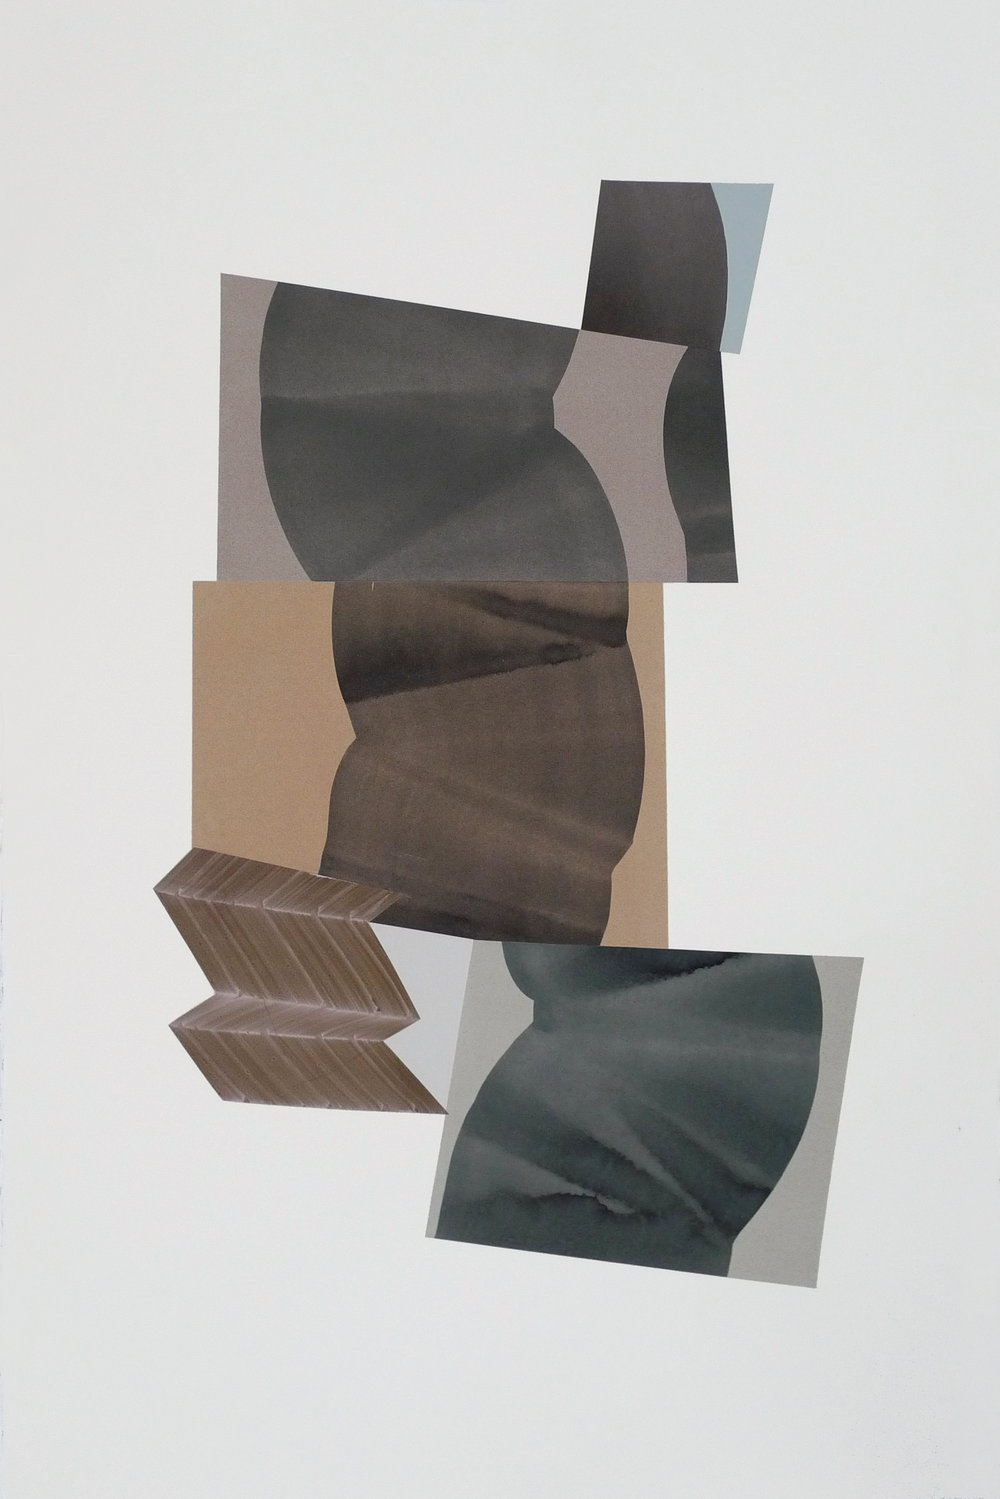 "Simone Rochon,  Ombres souples no. 3 , 2017, collage, acrylic ink on Waterford paper, 40"" x 26"" (102 x 66 cm)."